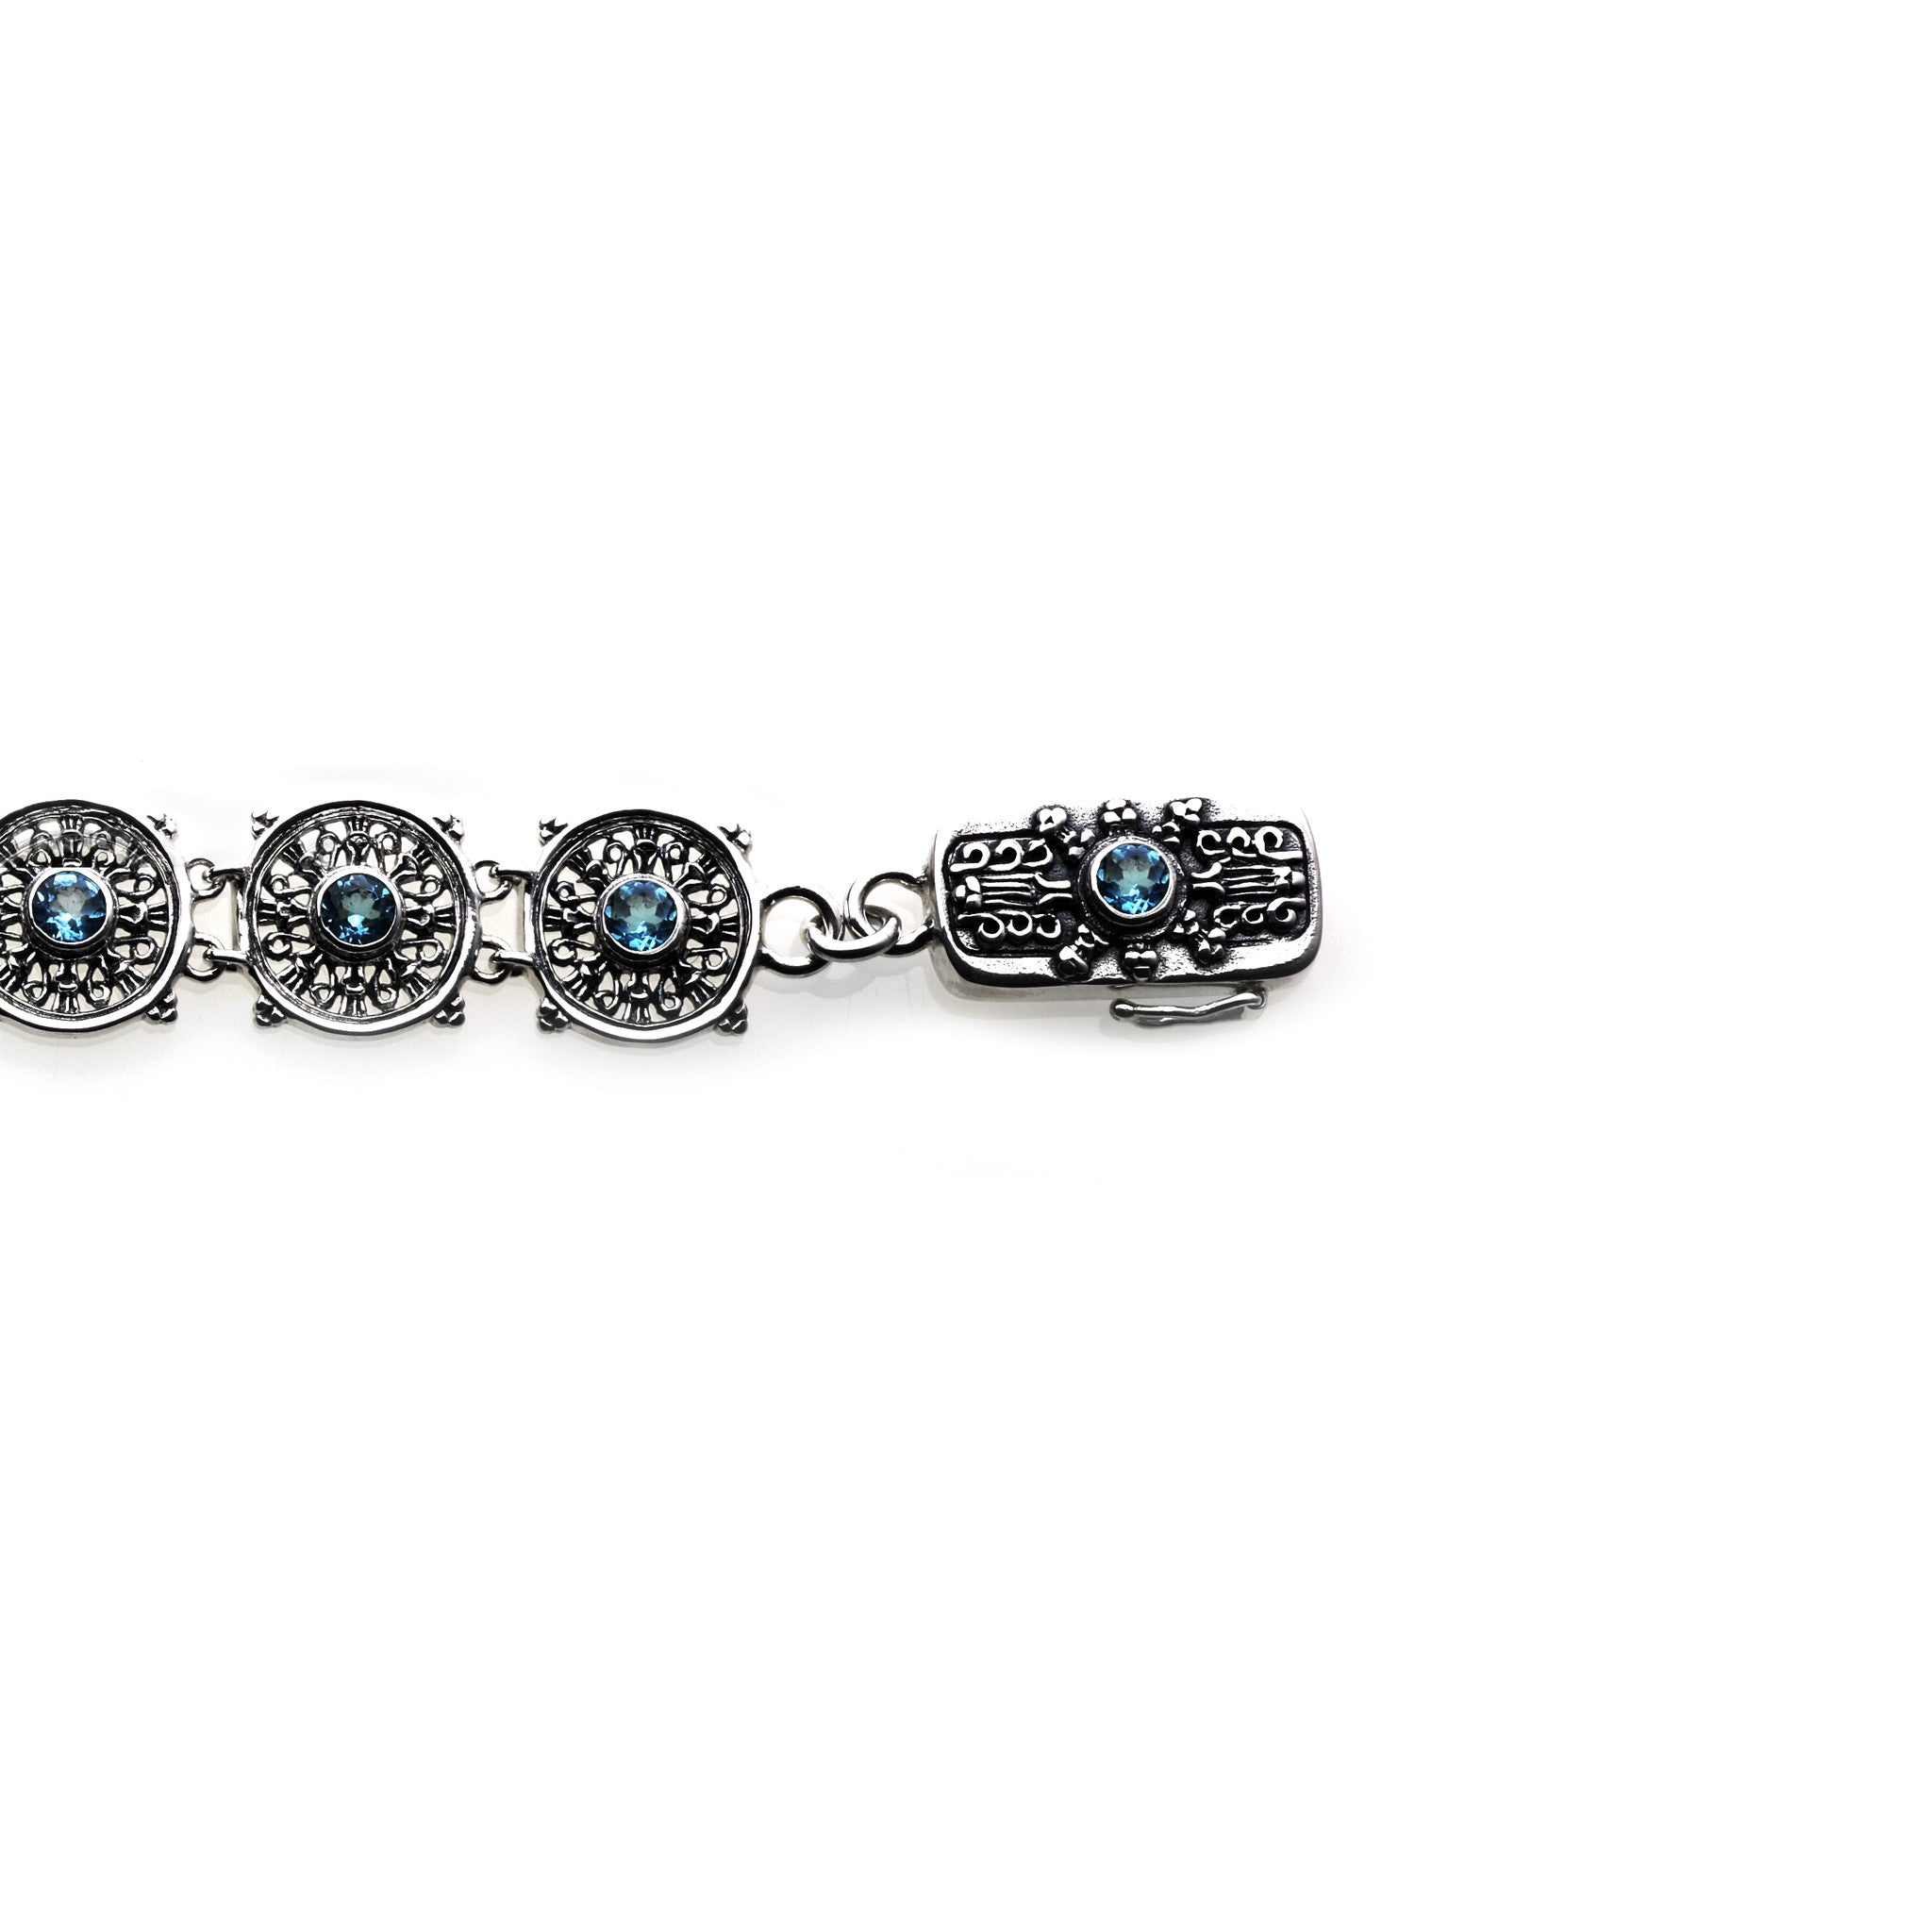 Dharmachakra Noble Truth Sterling Silver & Blue Topaz Bracelet   Cynthia Gale New York  4